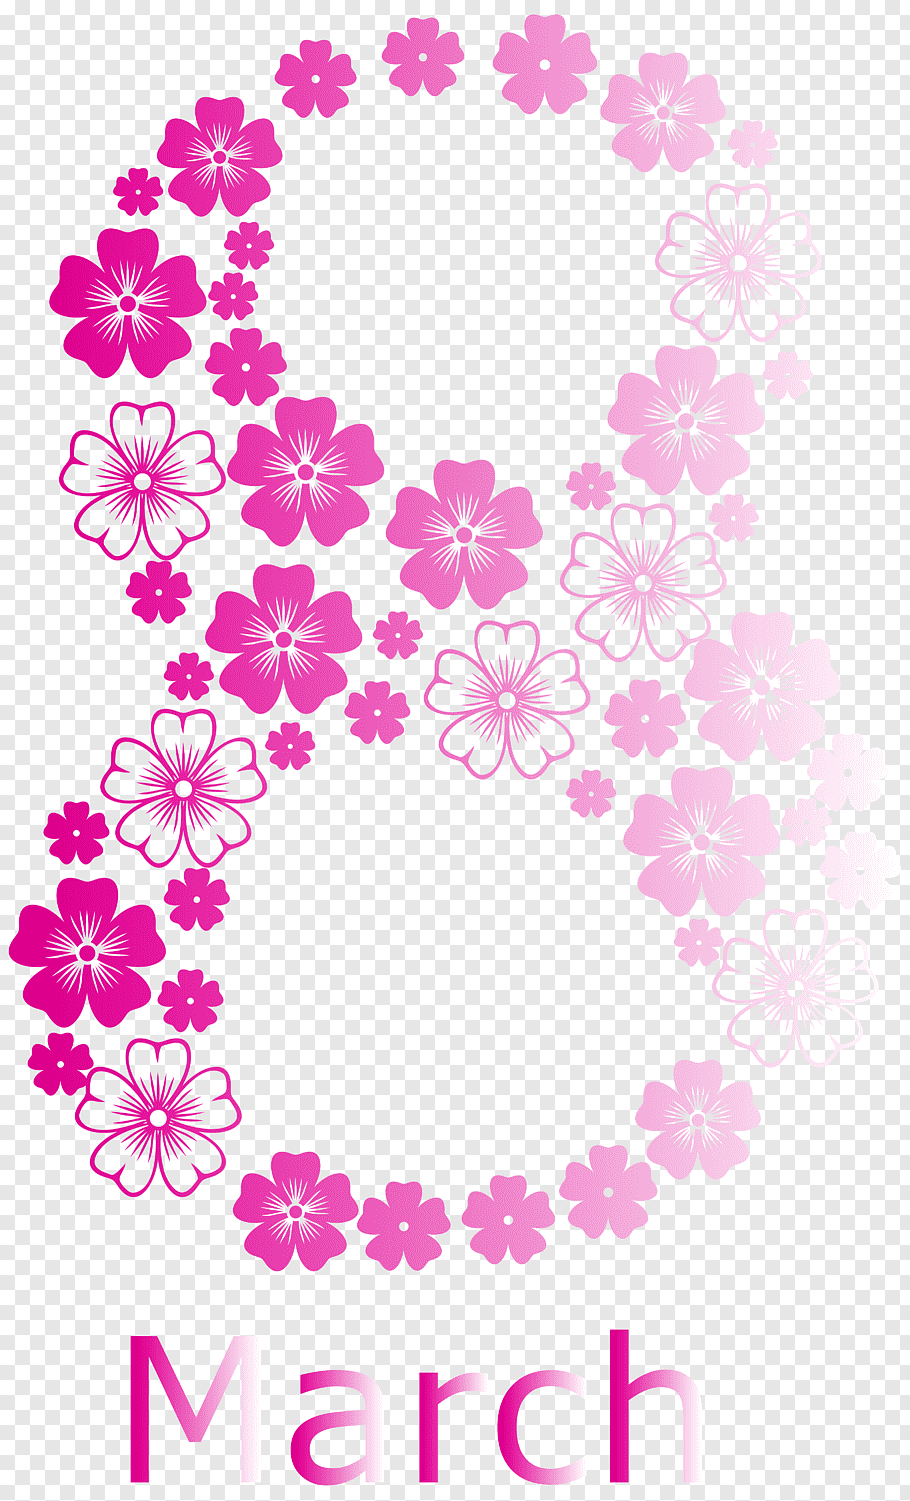 Pink petaled flowers illustration with March text overlay.